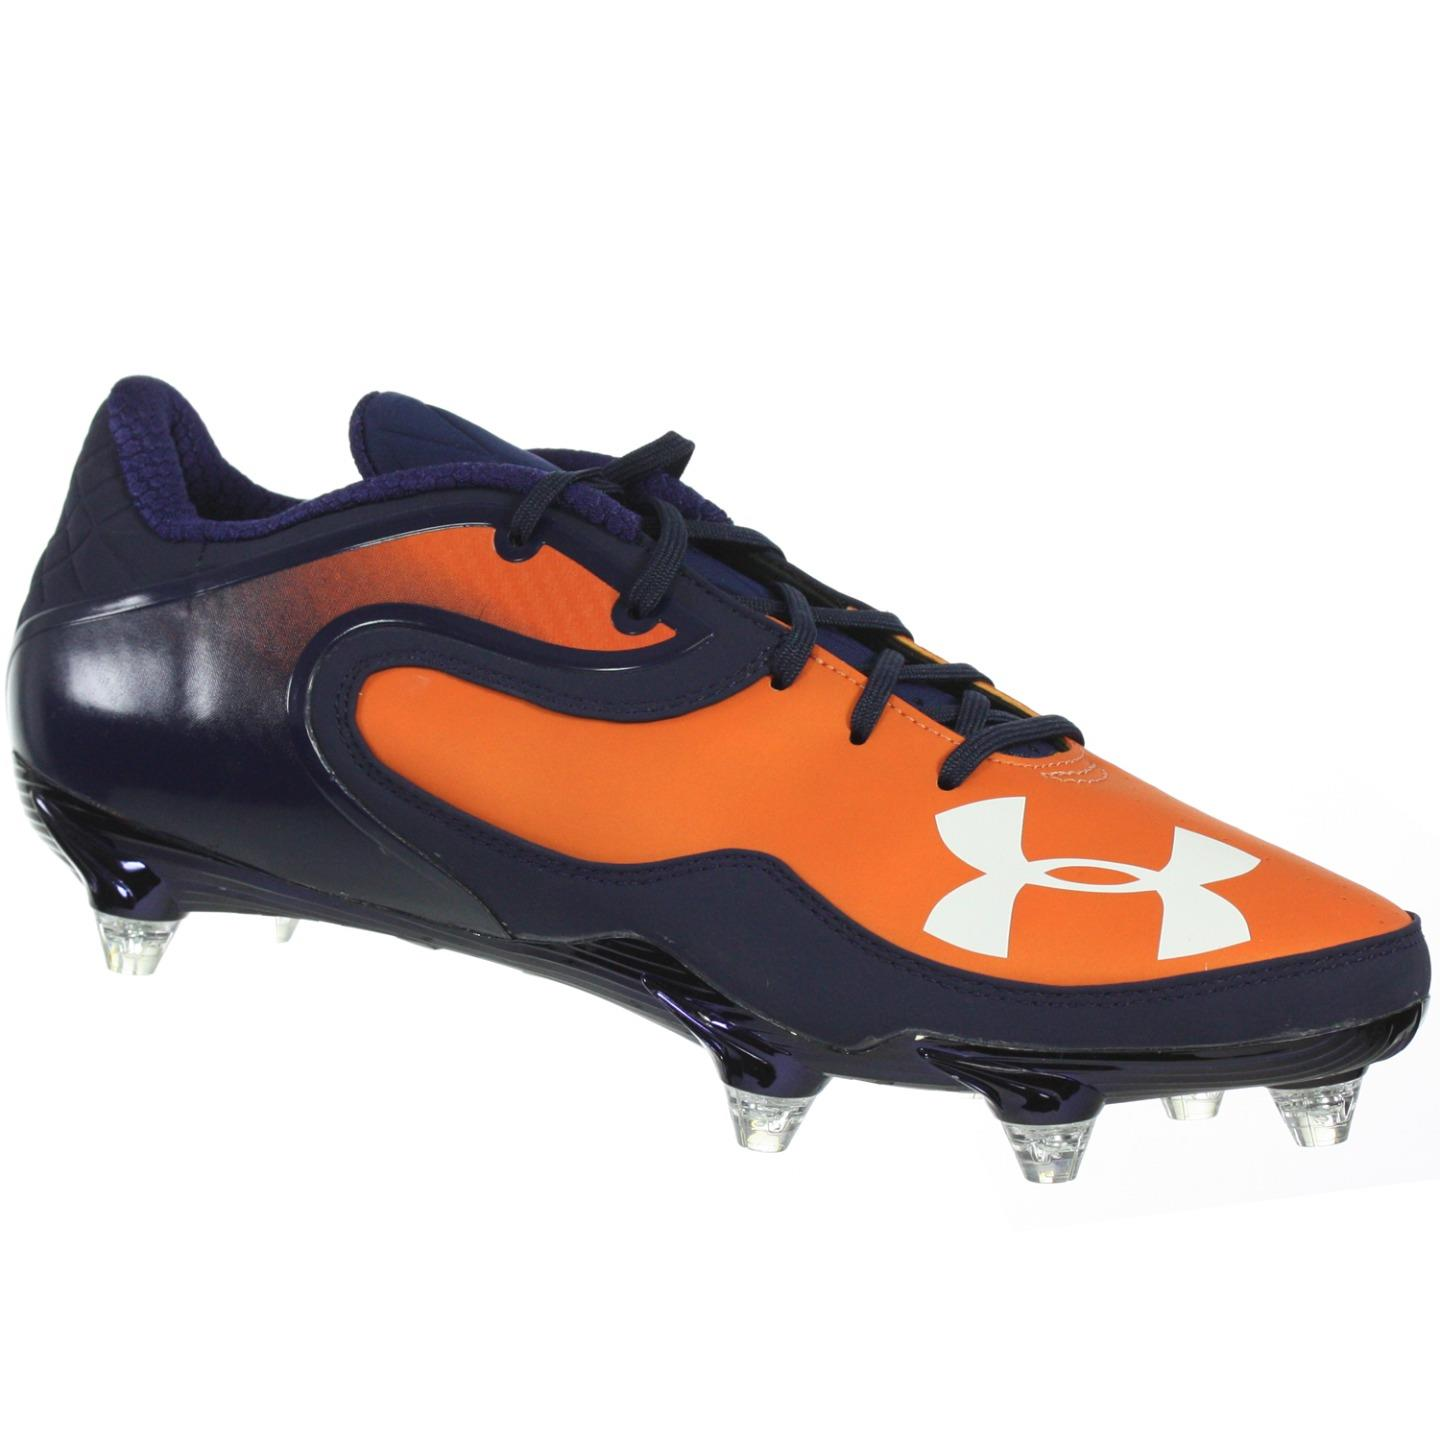 UNDER ARMOUR MEN'S FOOTBALL CLEATS TEAM CAM LOW D PRO NAVY ORANGE WHITE 12 M